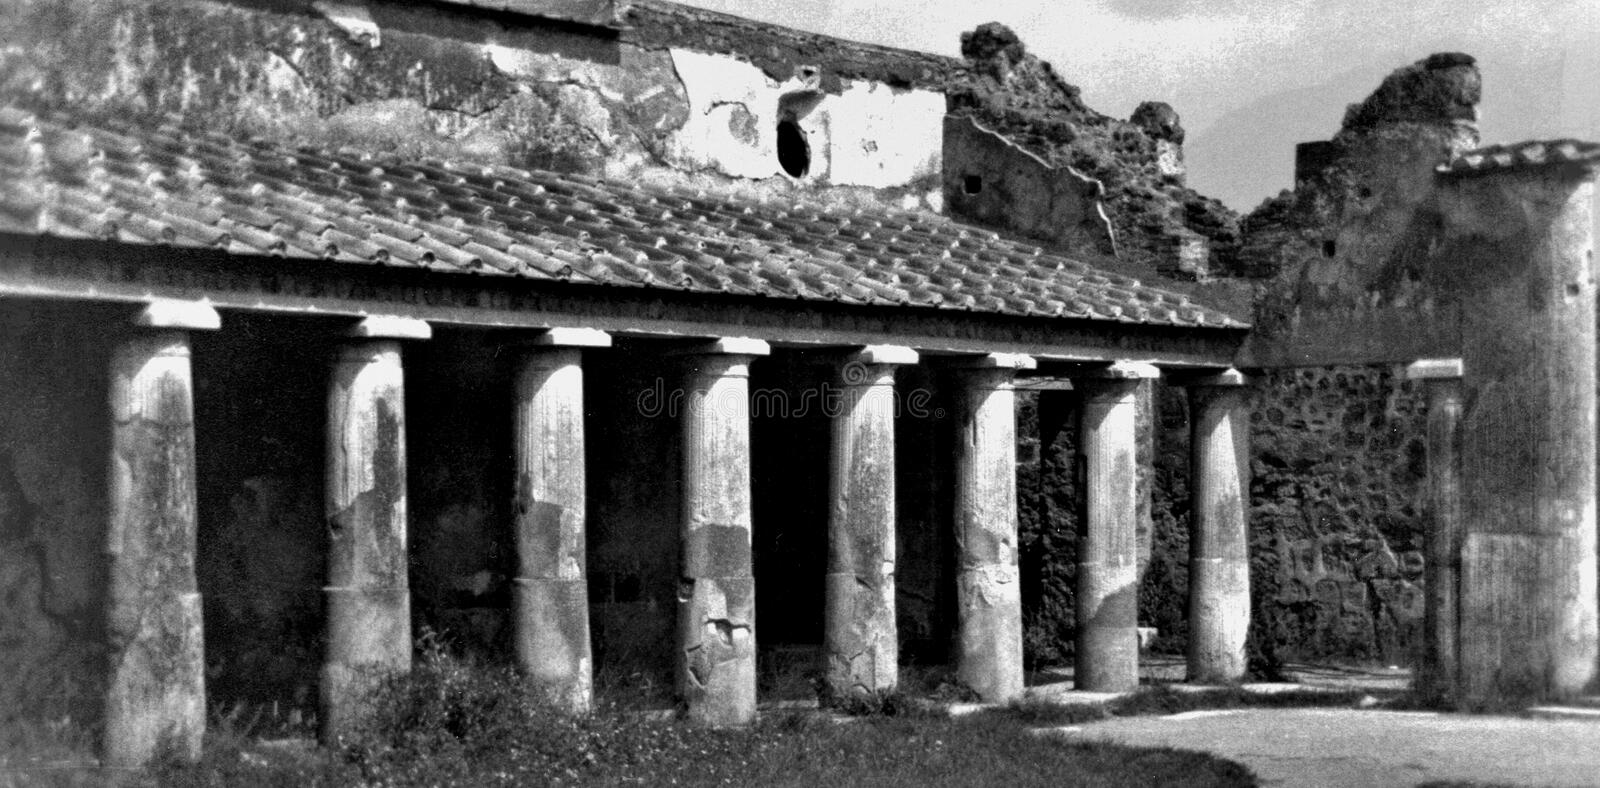 Pompeii Italy, circa 1984, ruins of a public building. City of Pompeii Italy, circa 1984, ruins of a public building that had been significantly recovered by stock photos